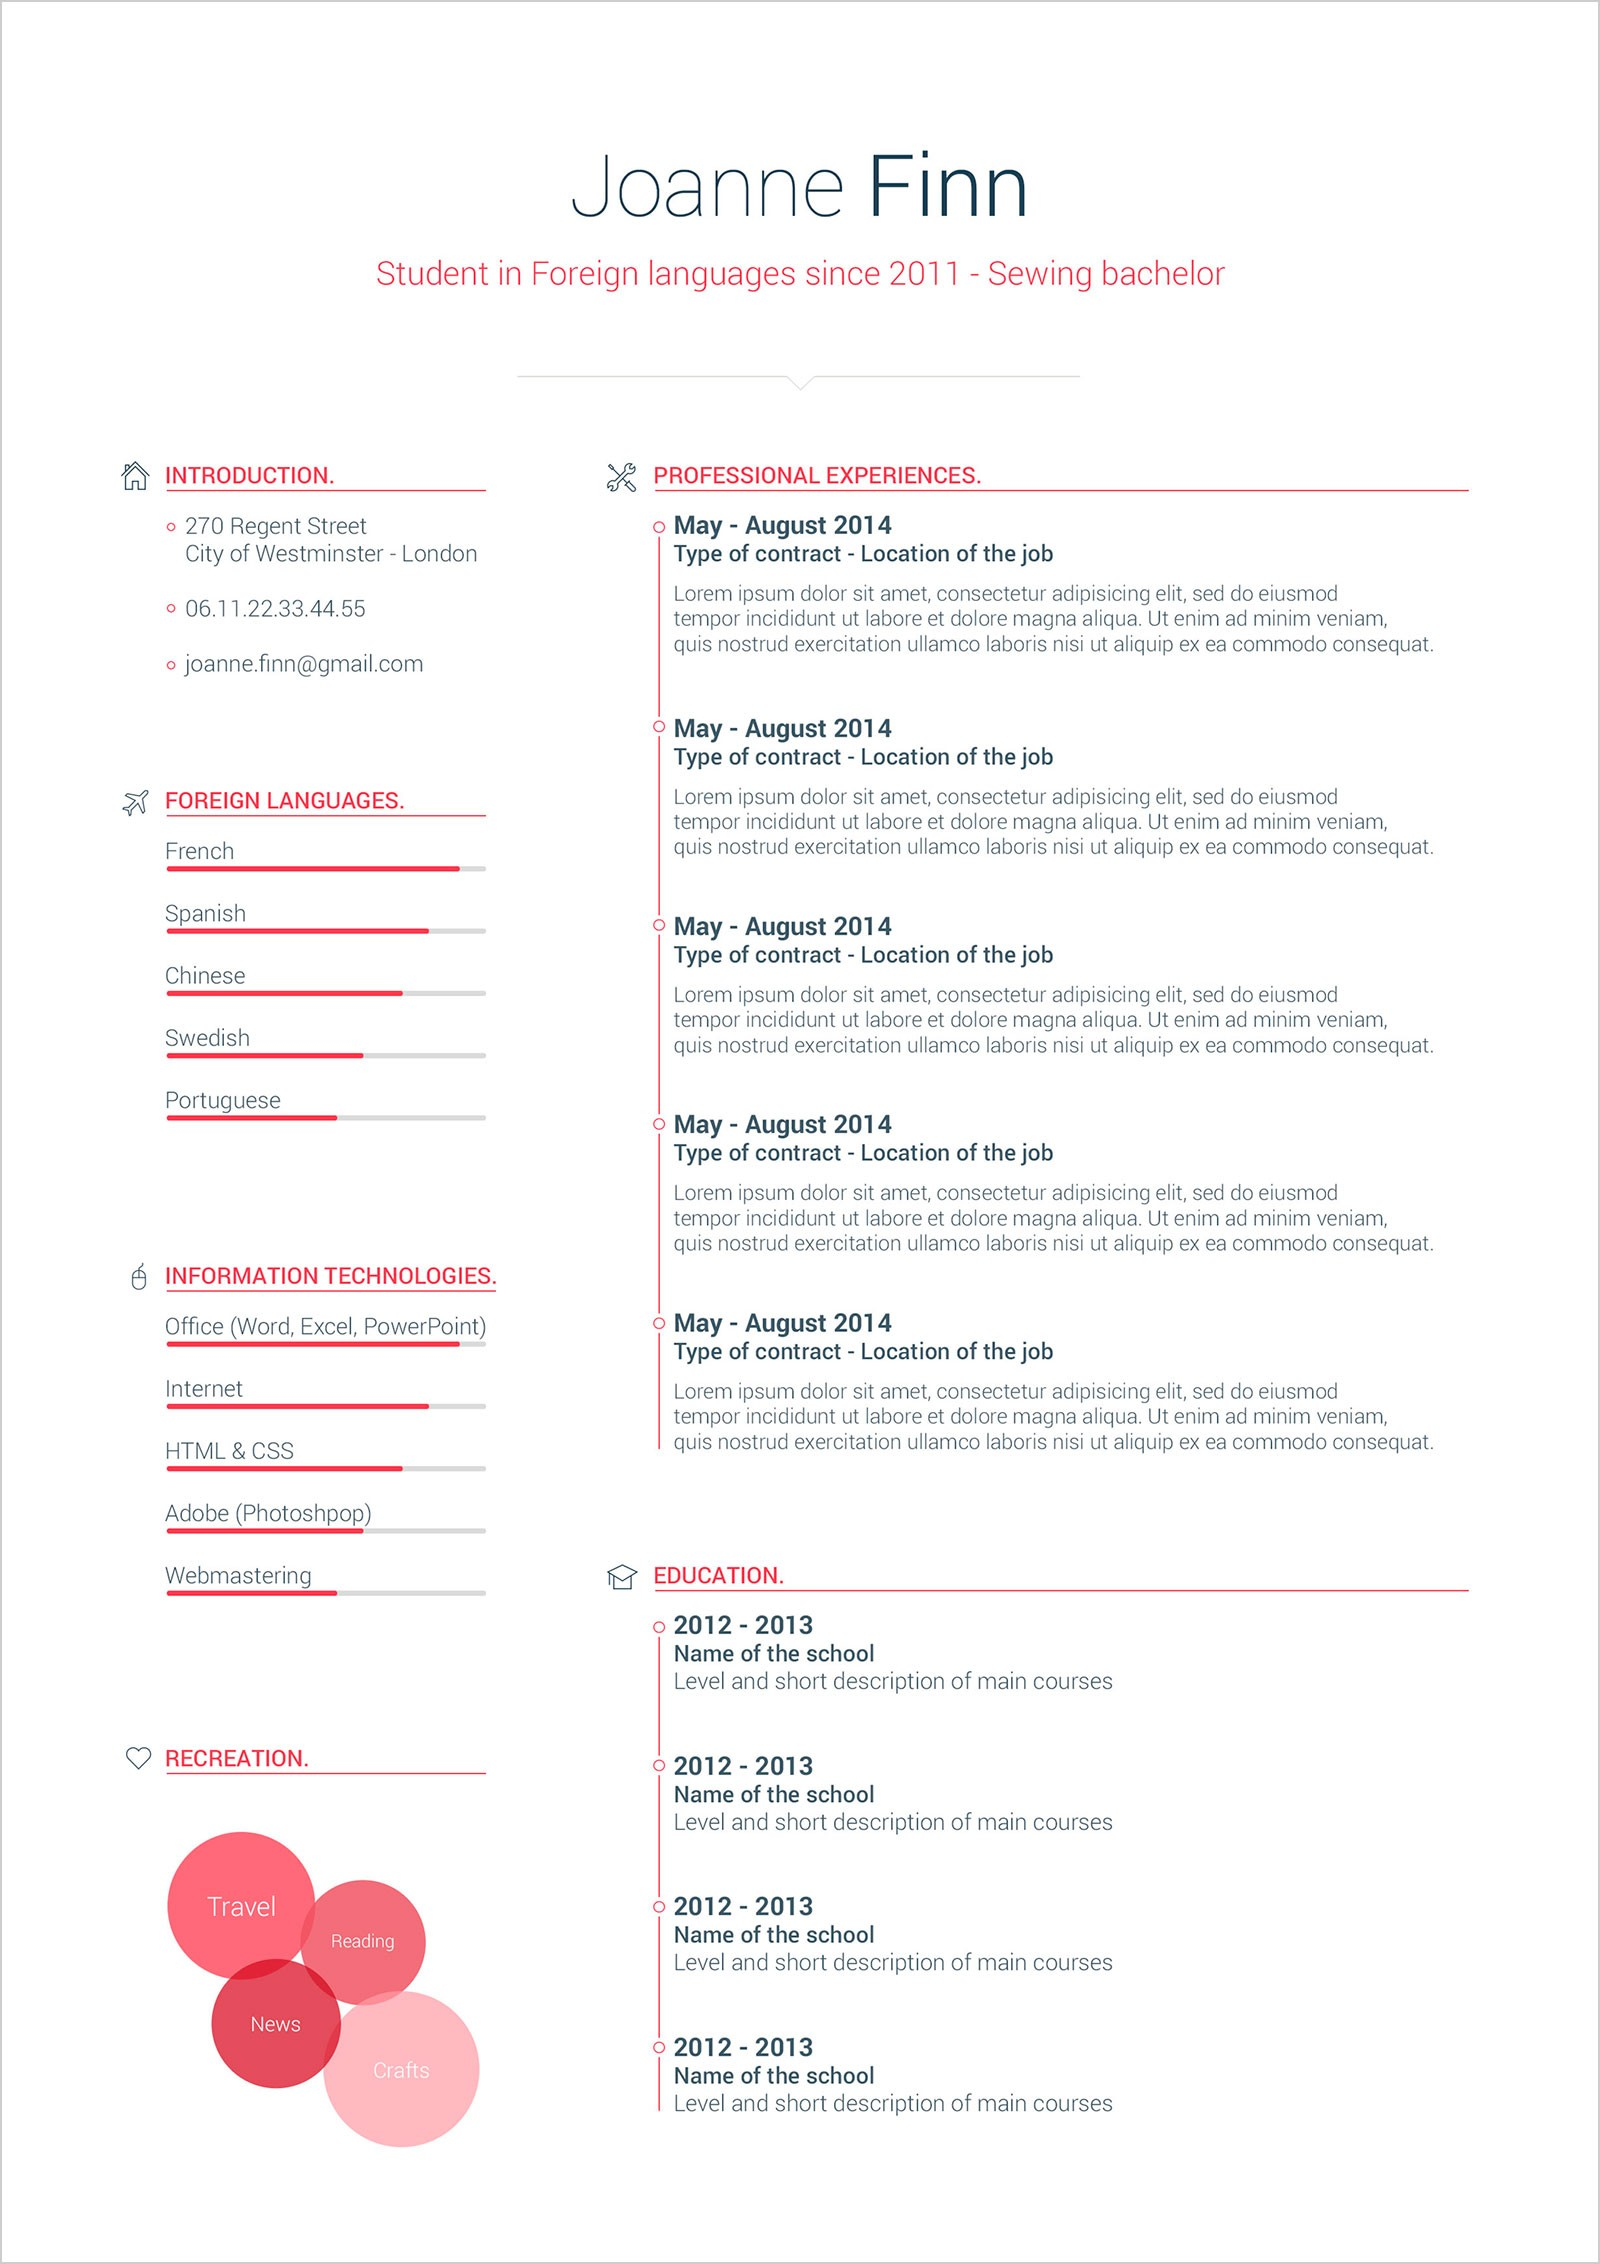 resume templates word free download  Free Simple CV Format Template In PSD & Word - Good Resume - resume templates word free download